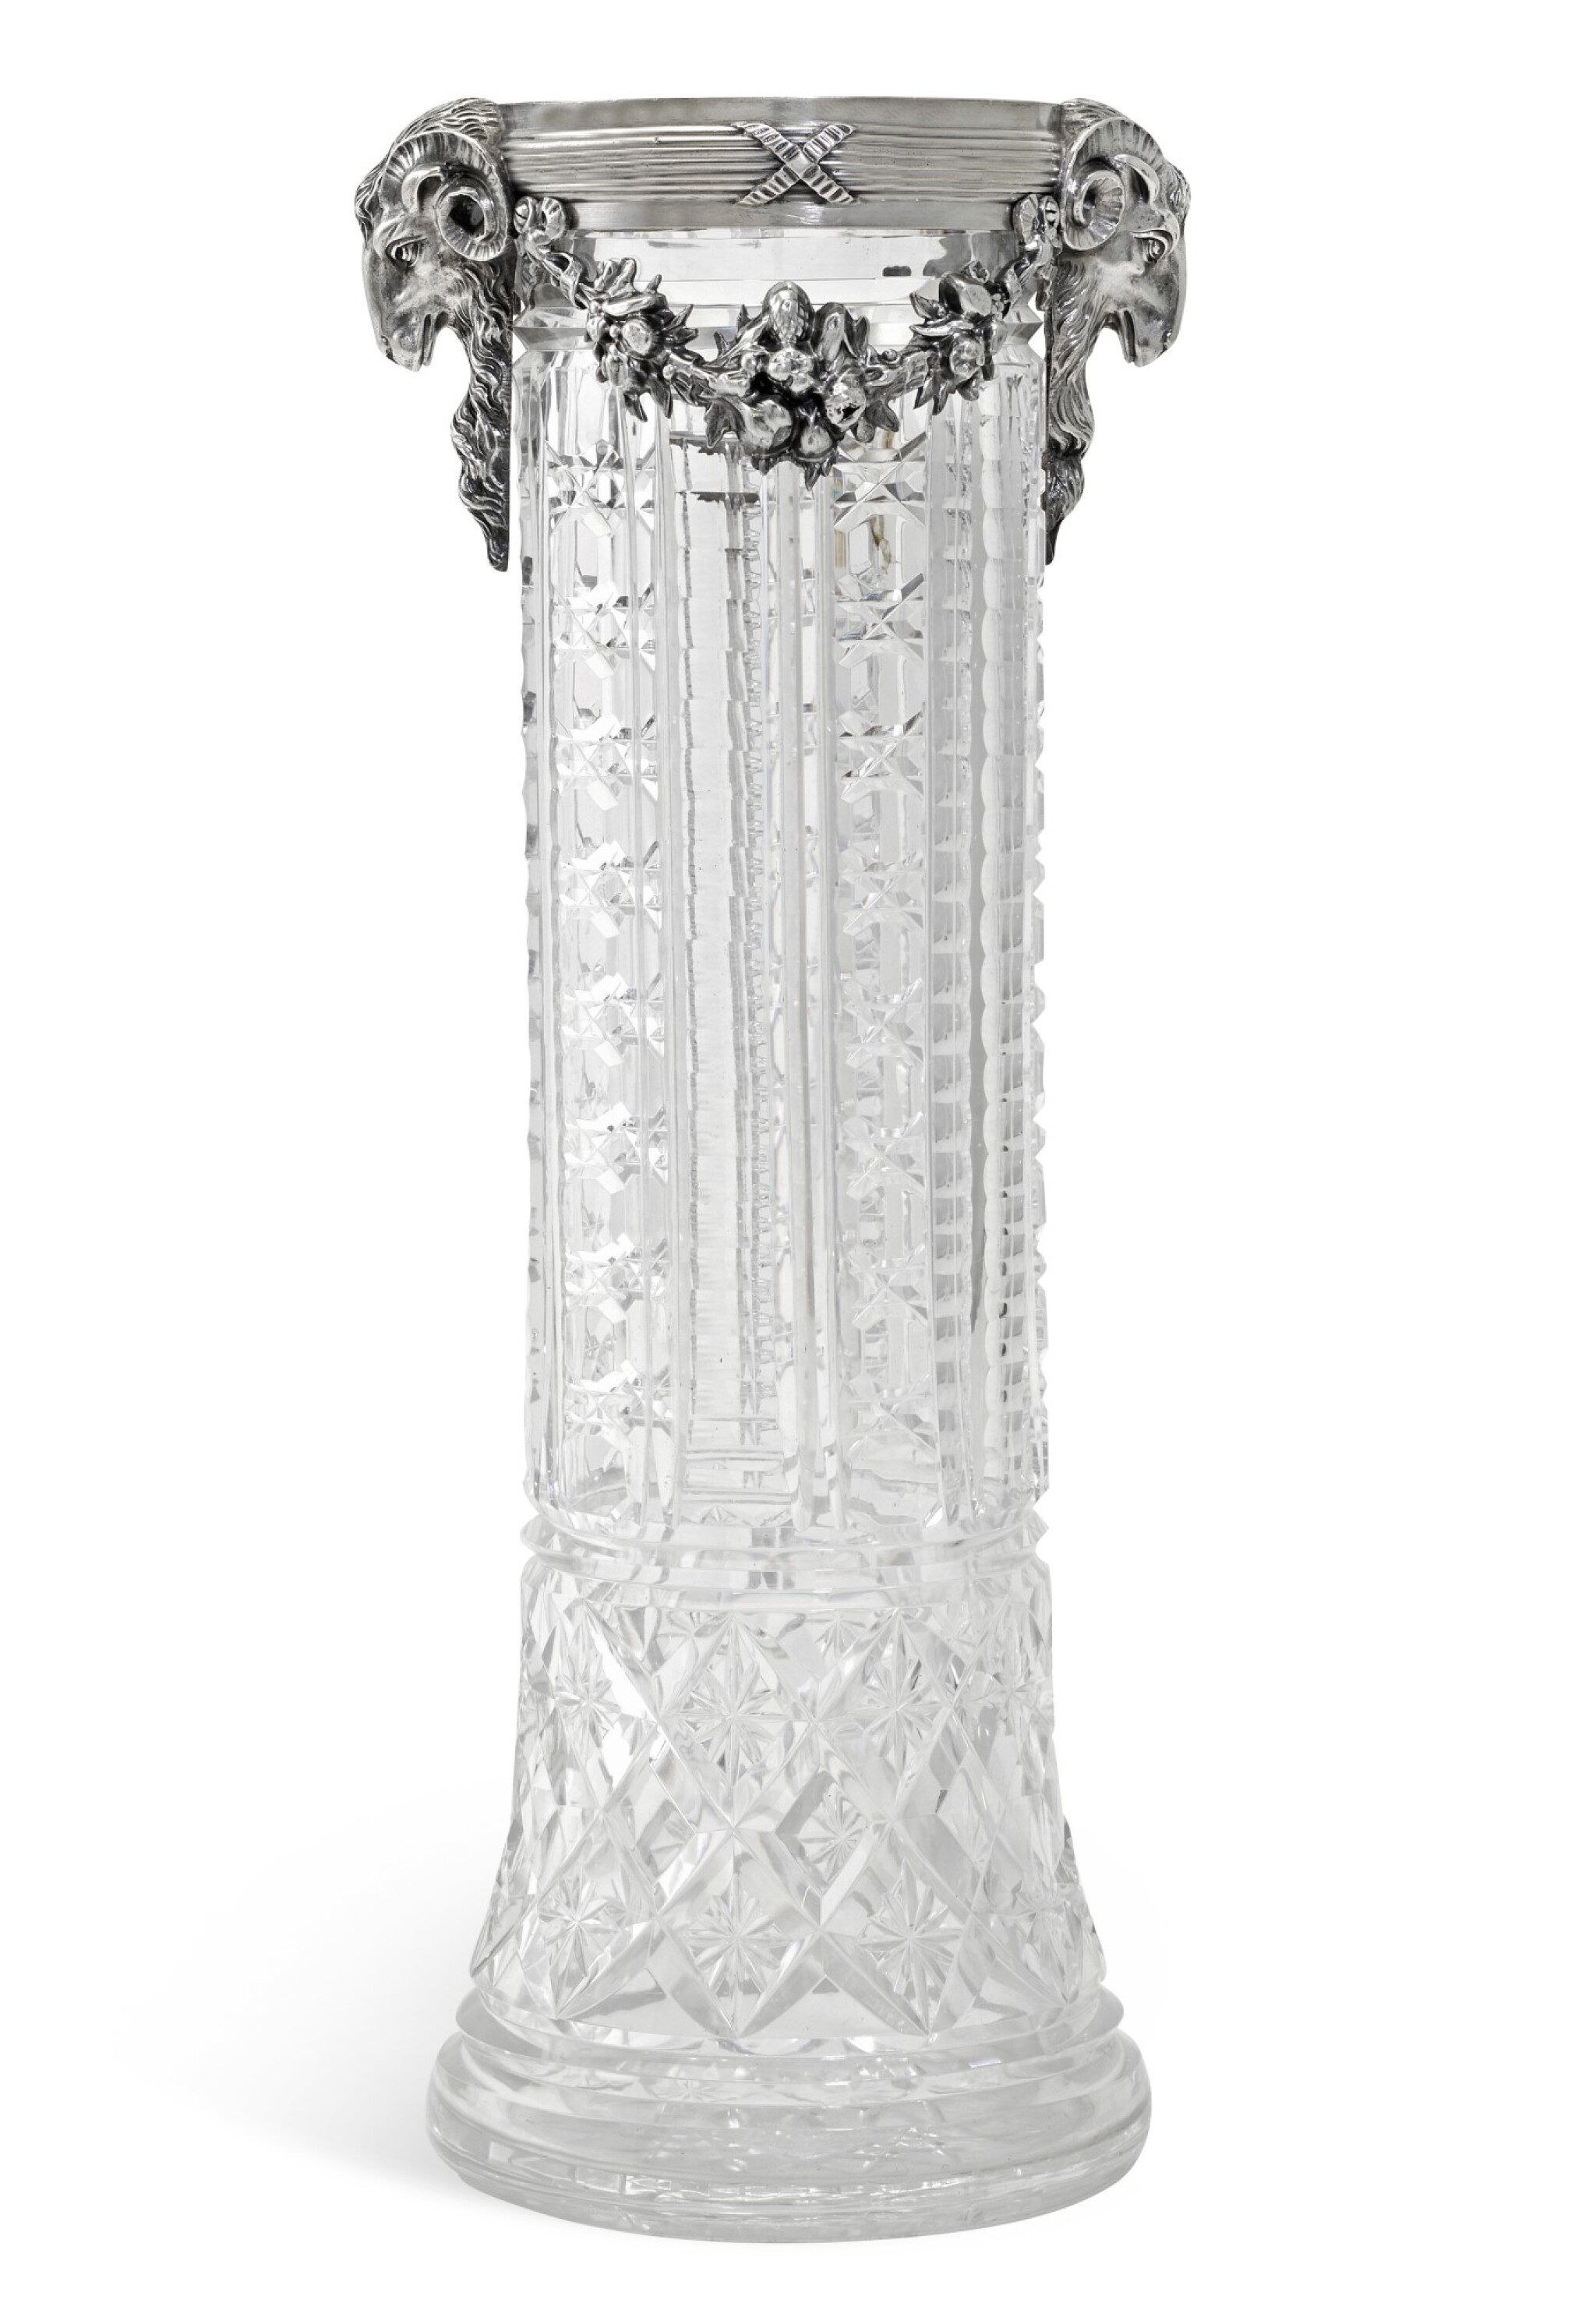 View full screen - View 1 of Lot 110. A silver-mounted, cut-glass vase, St Petersburg, 1908-1917.